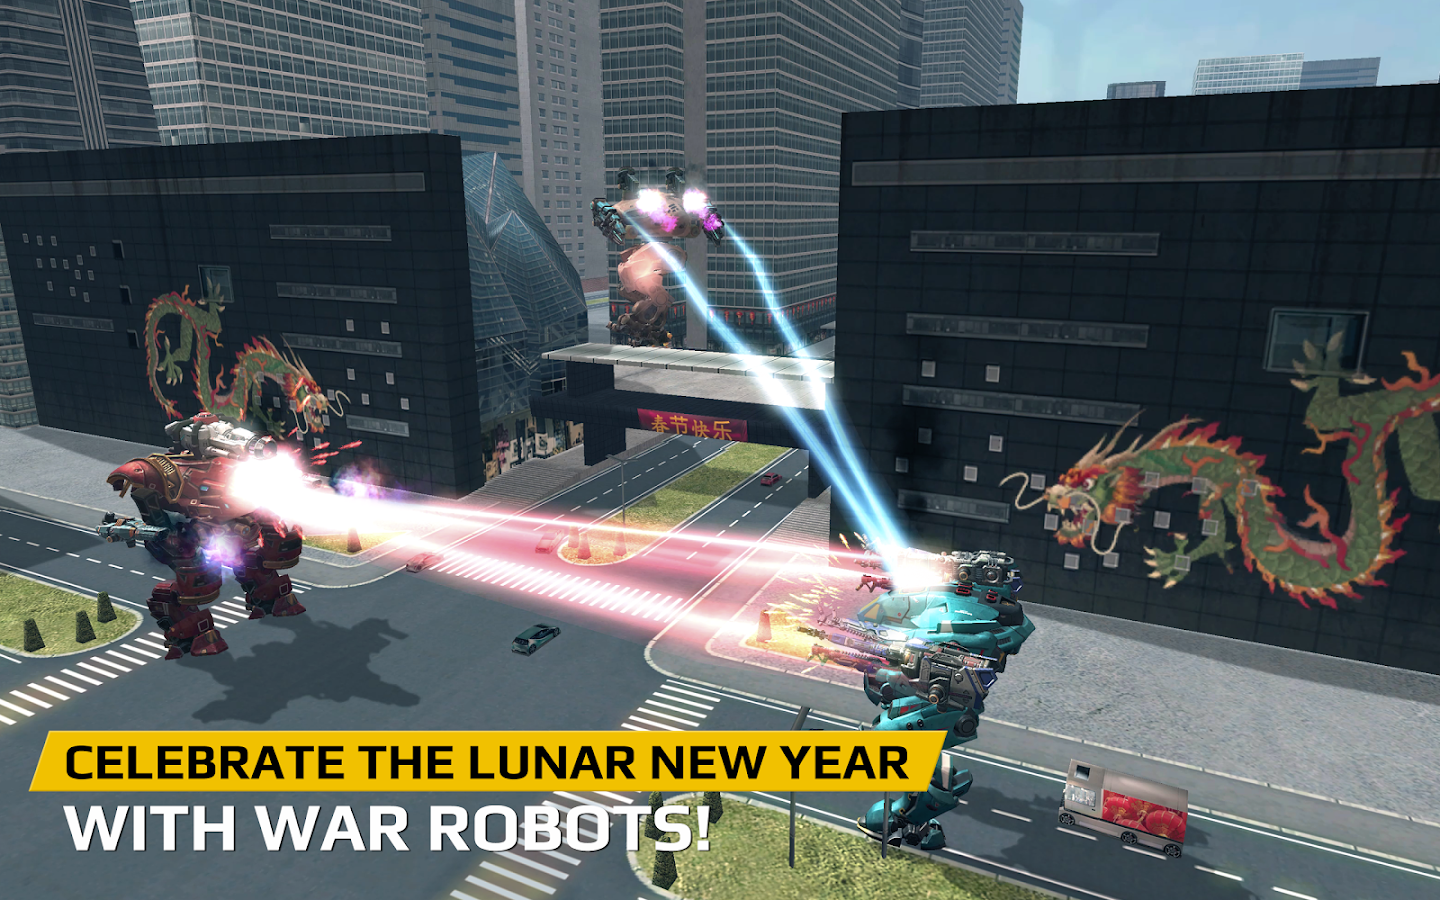 Download War Robots Mod Apk- Get Ulimited [Powers/Money/Keys/Stages]